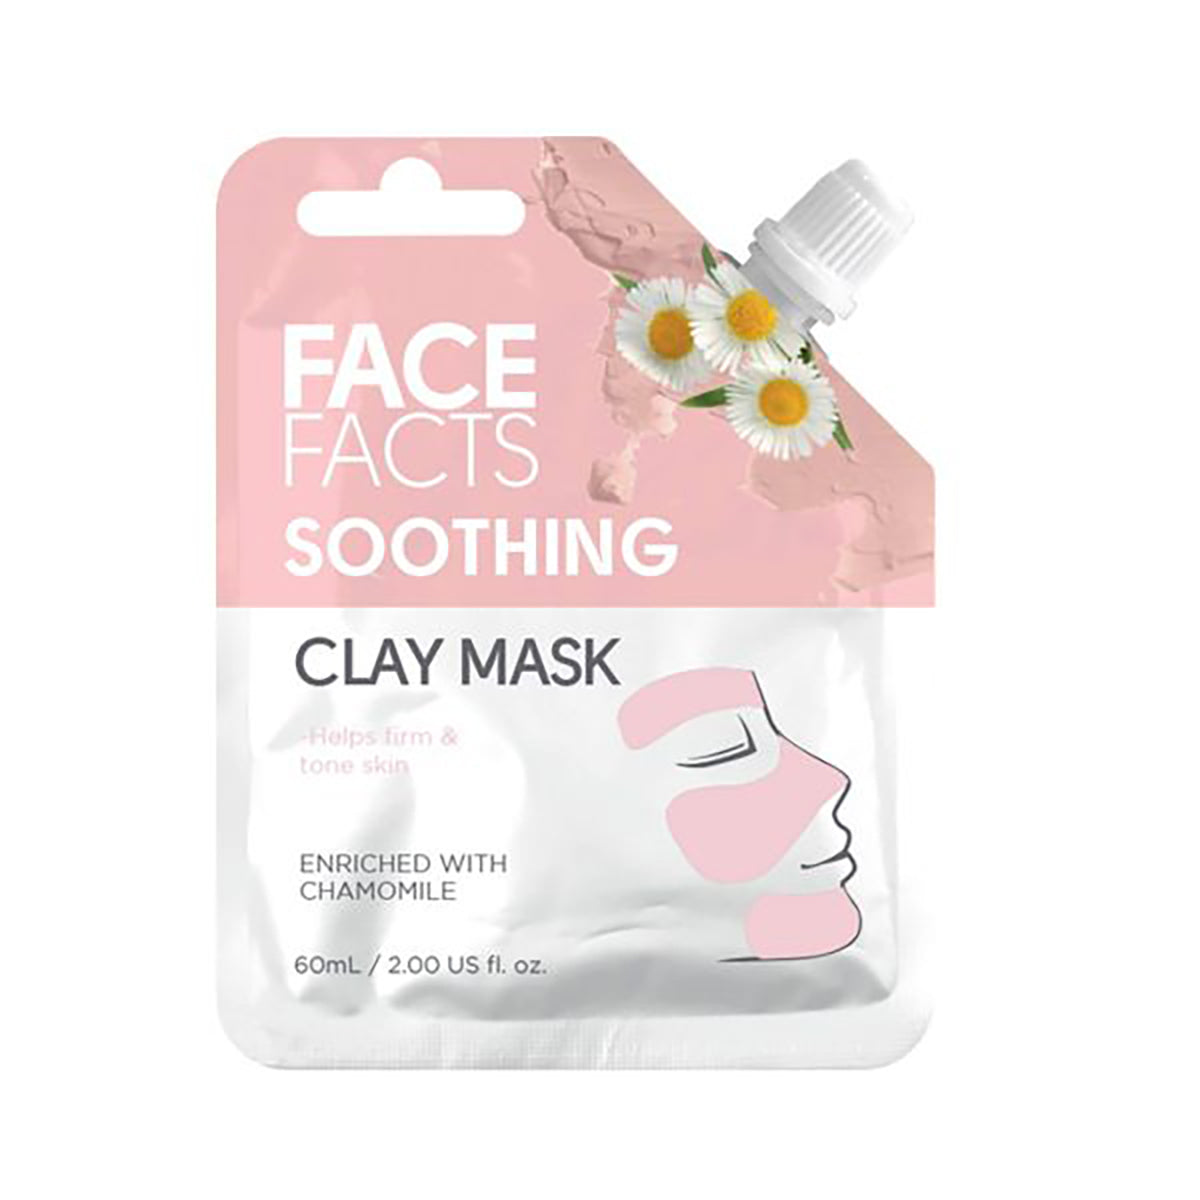 Face Facts Soothing Clay Mud Mask